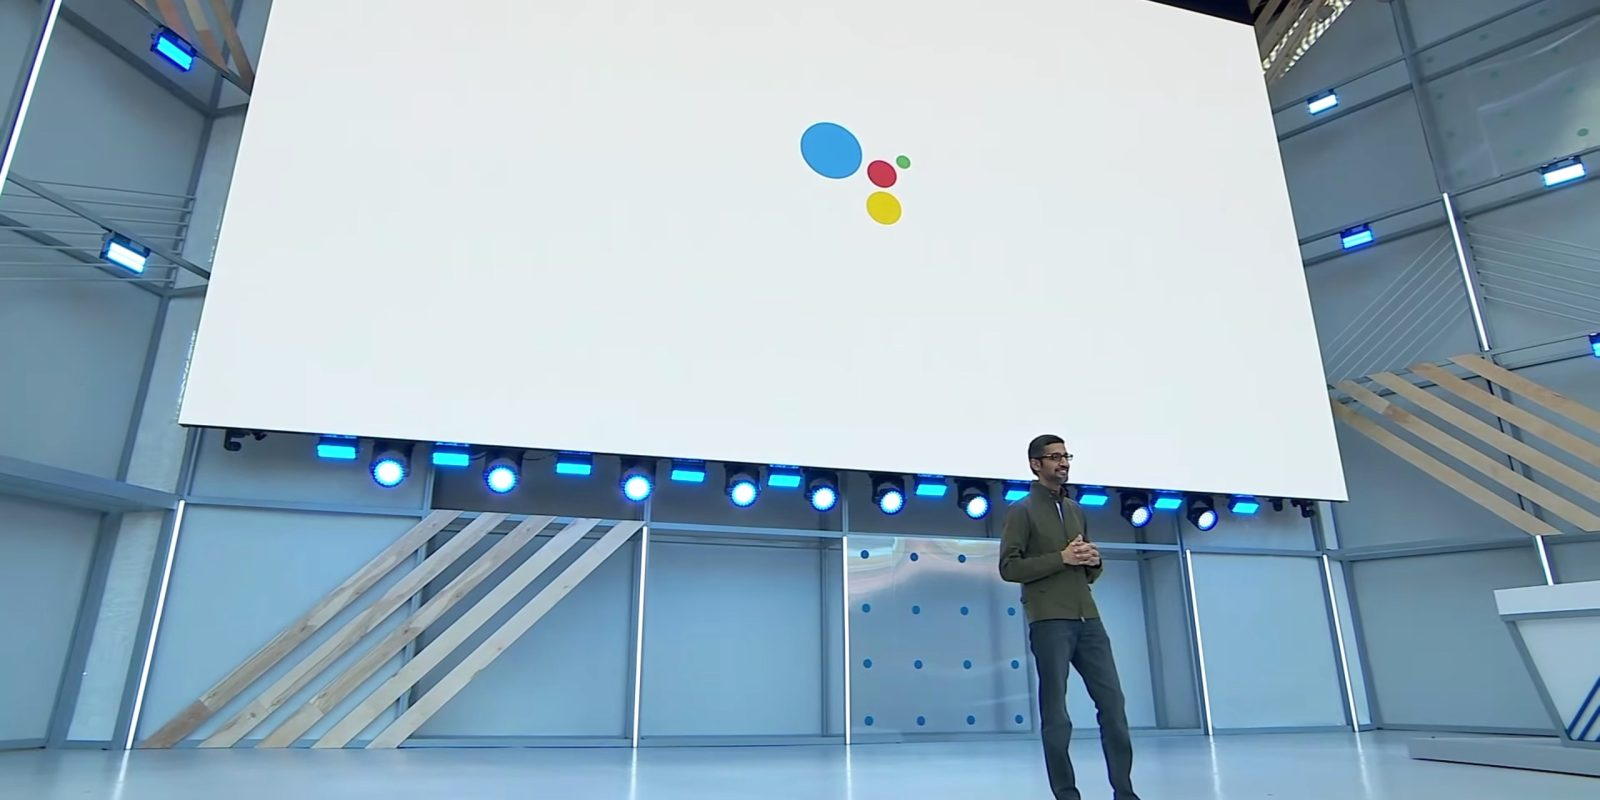 Google likely to unveil 'Project Euphonia' at I/O 2019